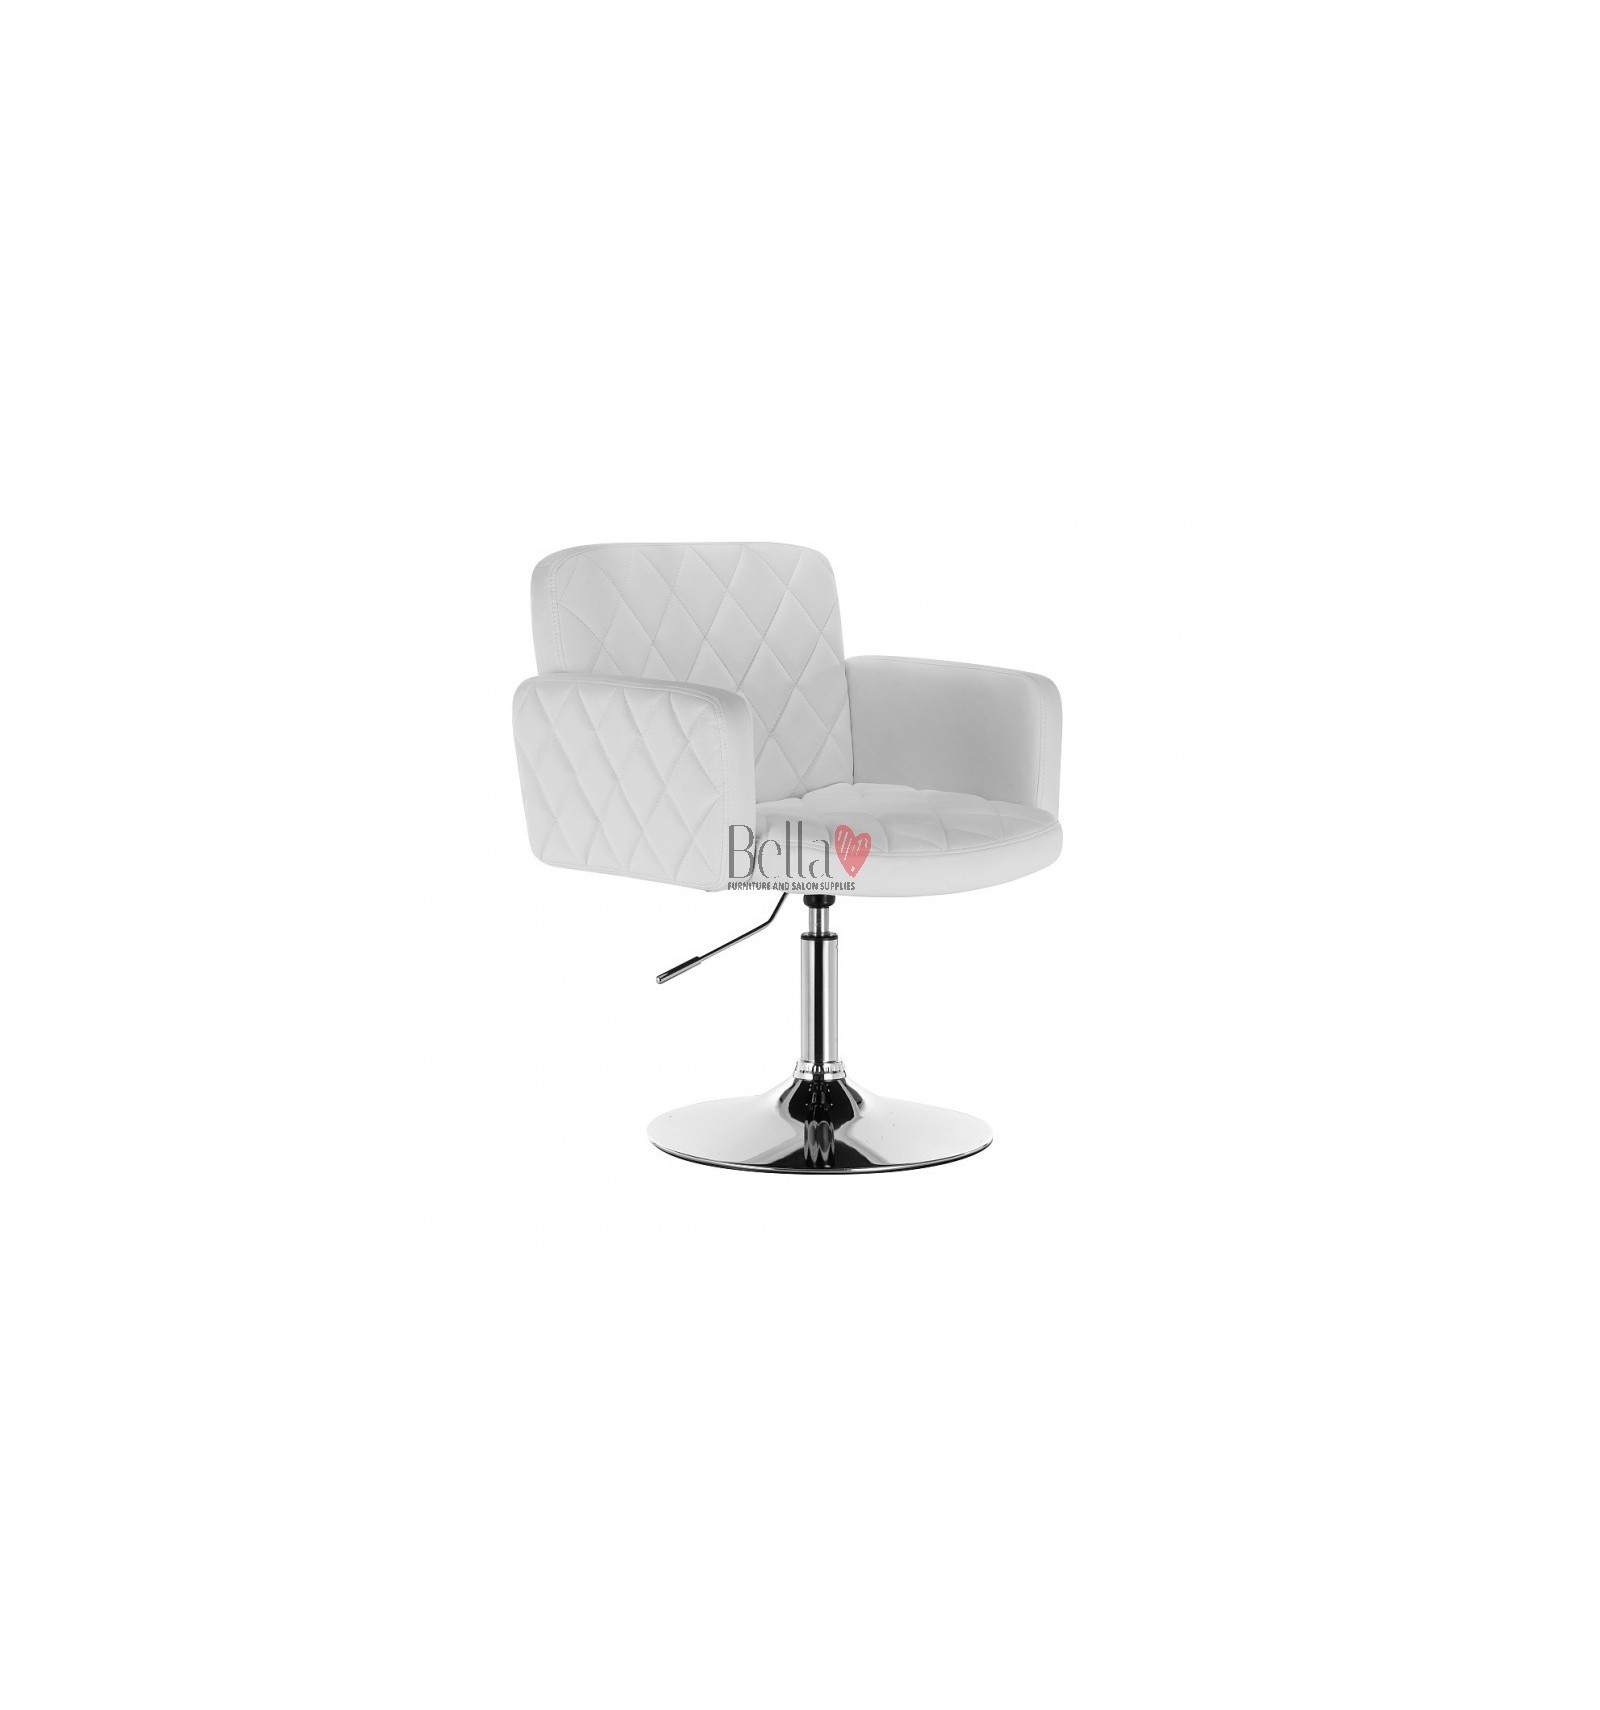 Best Selection Of Stylish Chairs For Beauty Salons Hc8020